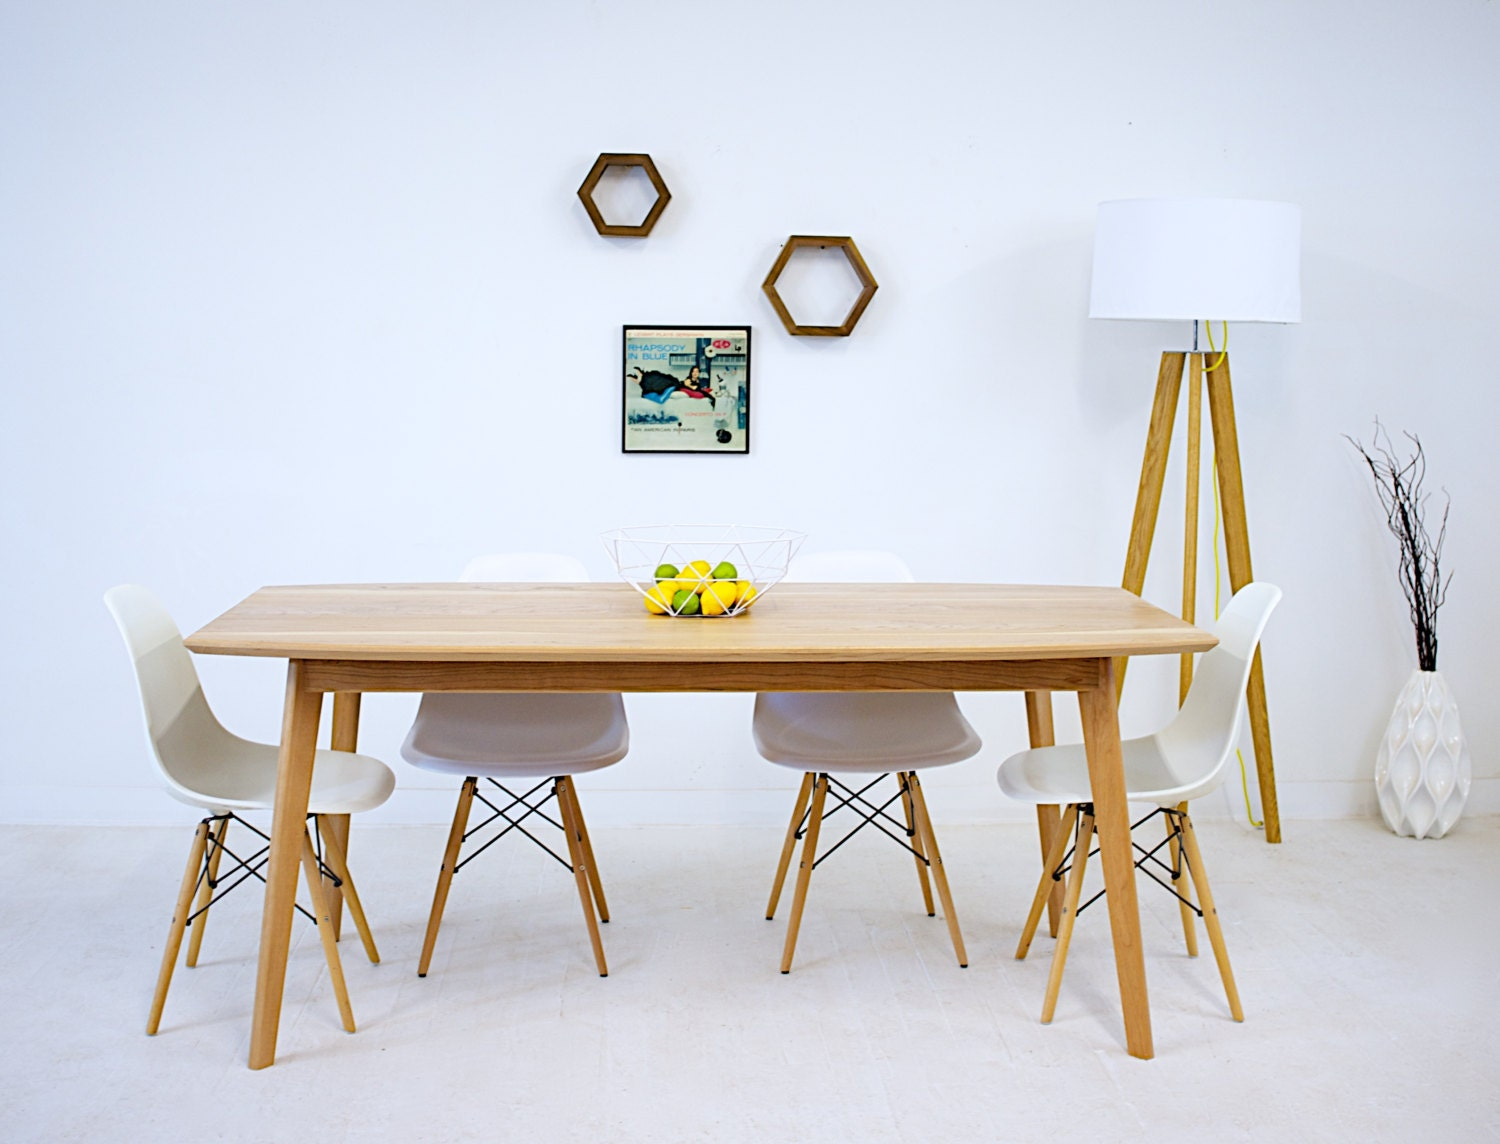 Kitchen Table Dining Table Modern Dining Table Small Dining : ilfullxfull747474431kc32 from www.etsy.com size 1500 x 1144 jpeg 188kB